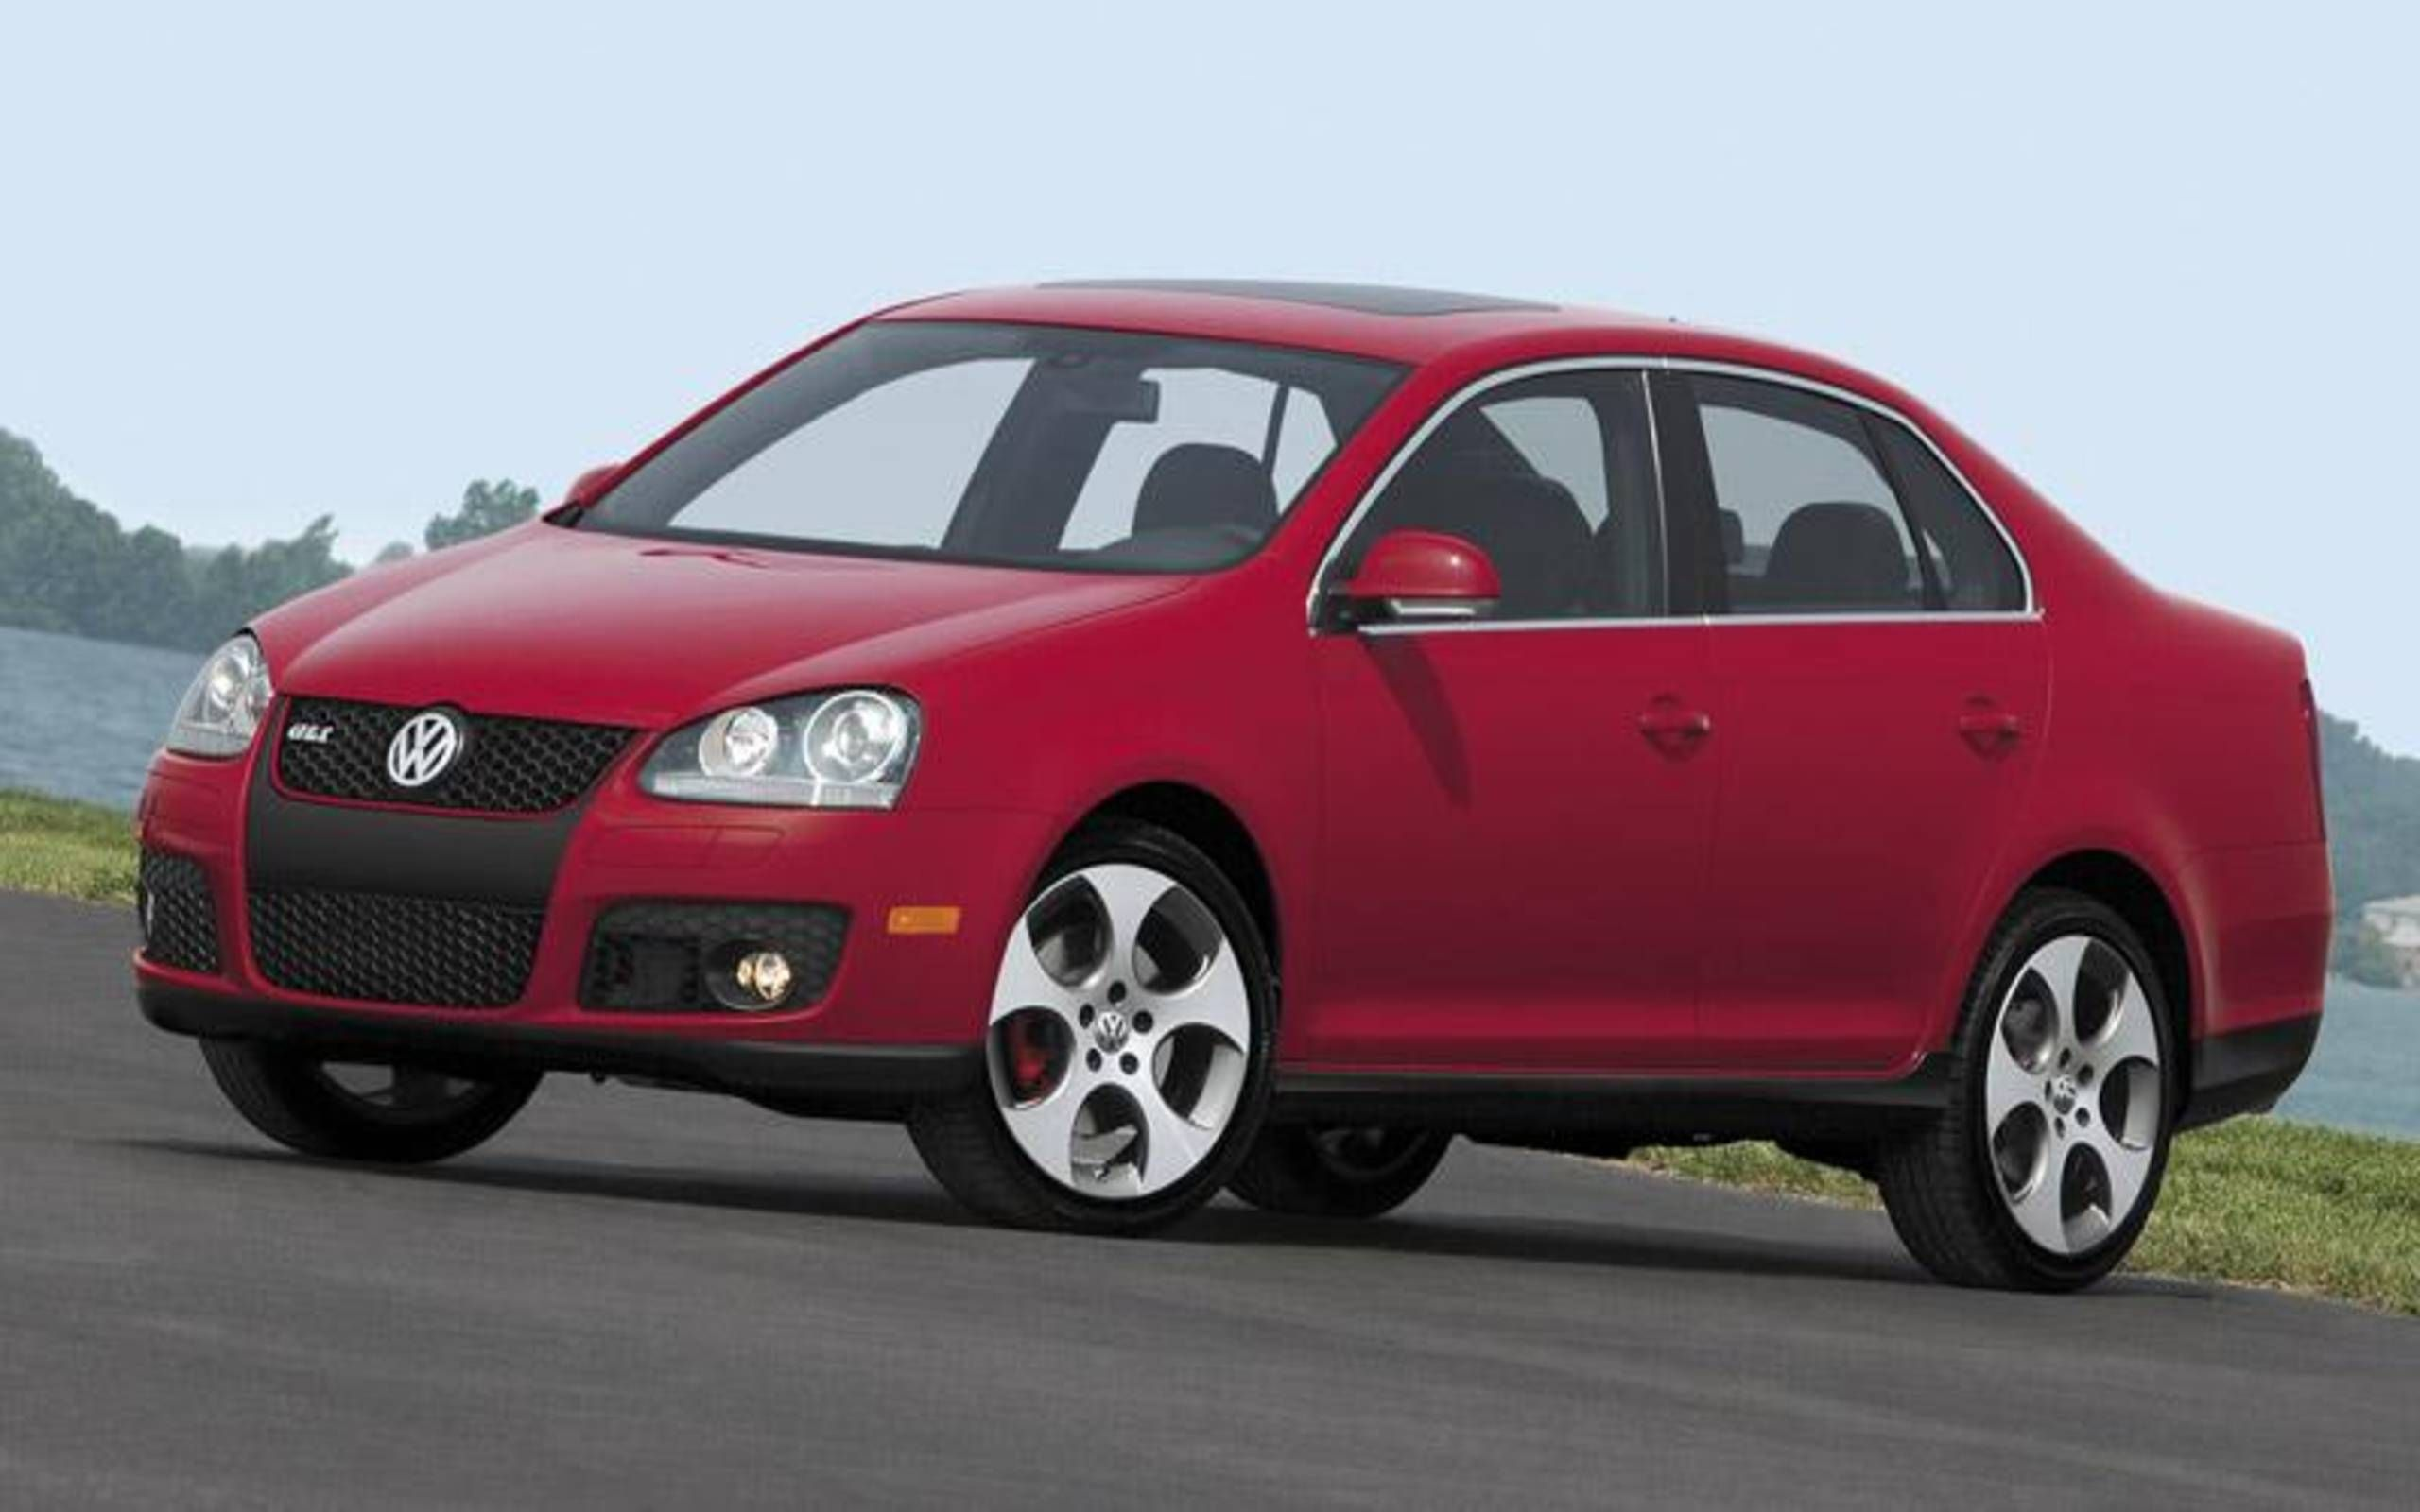 2006 Volkswagen Jetta Gli Young Sibling Makes Good Finery Exceeds Gli S Faults